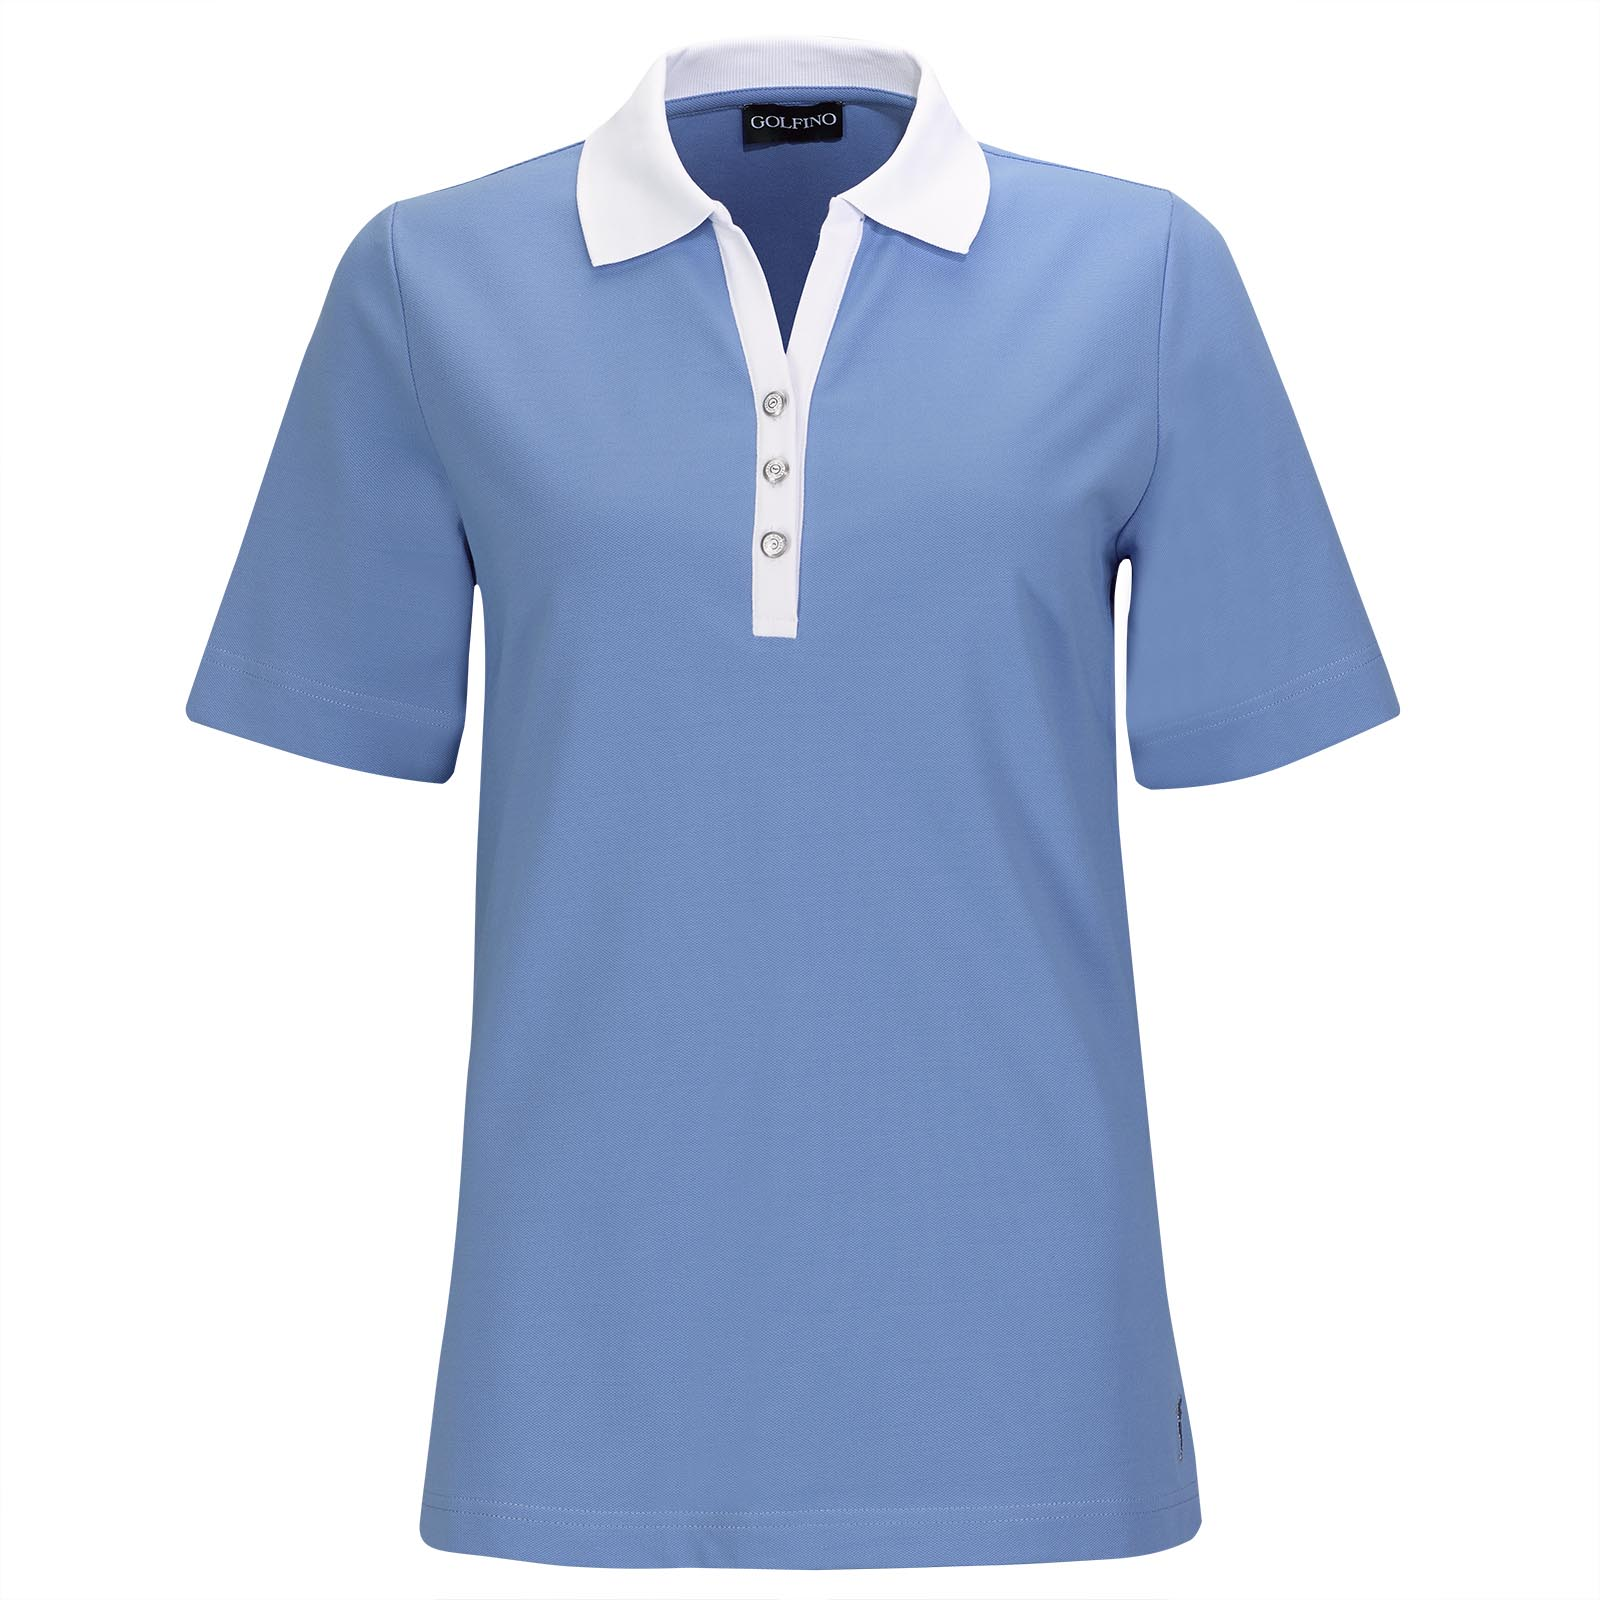 Short sleeve Ladies' golf polo with Sun Protection and deep cut